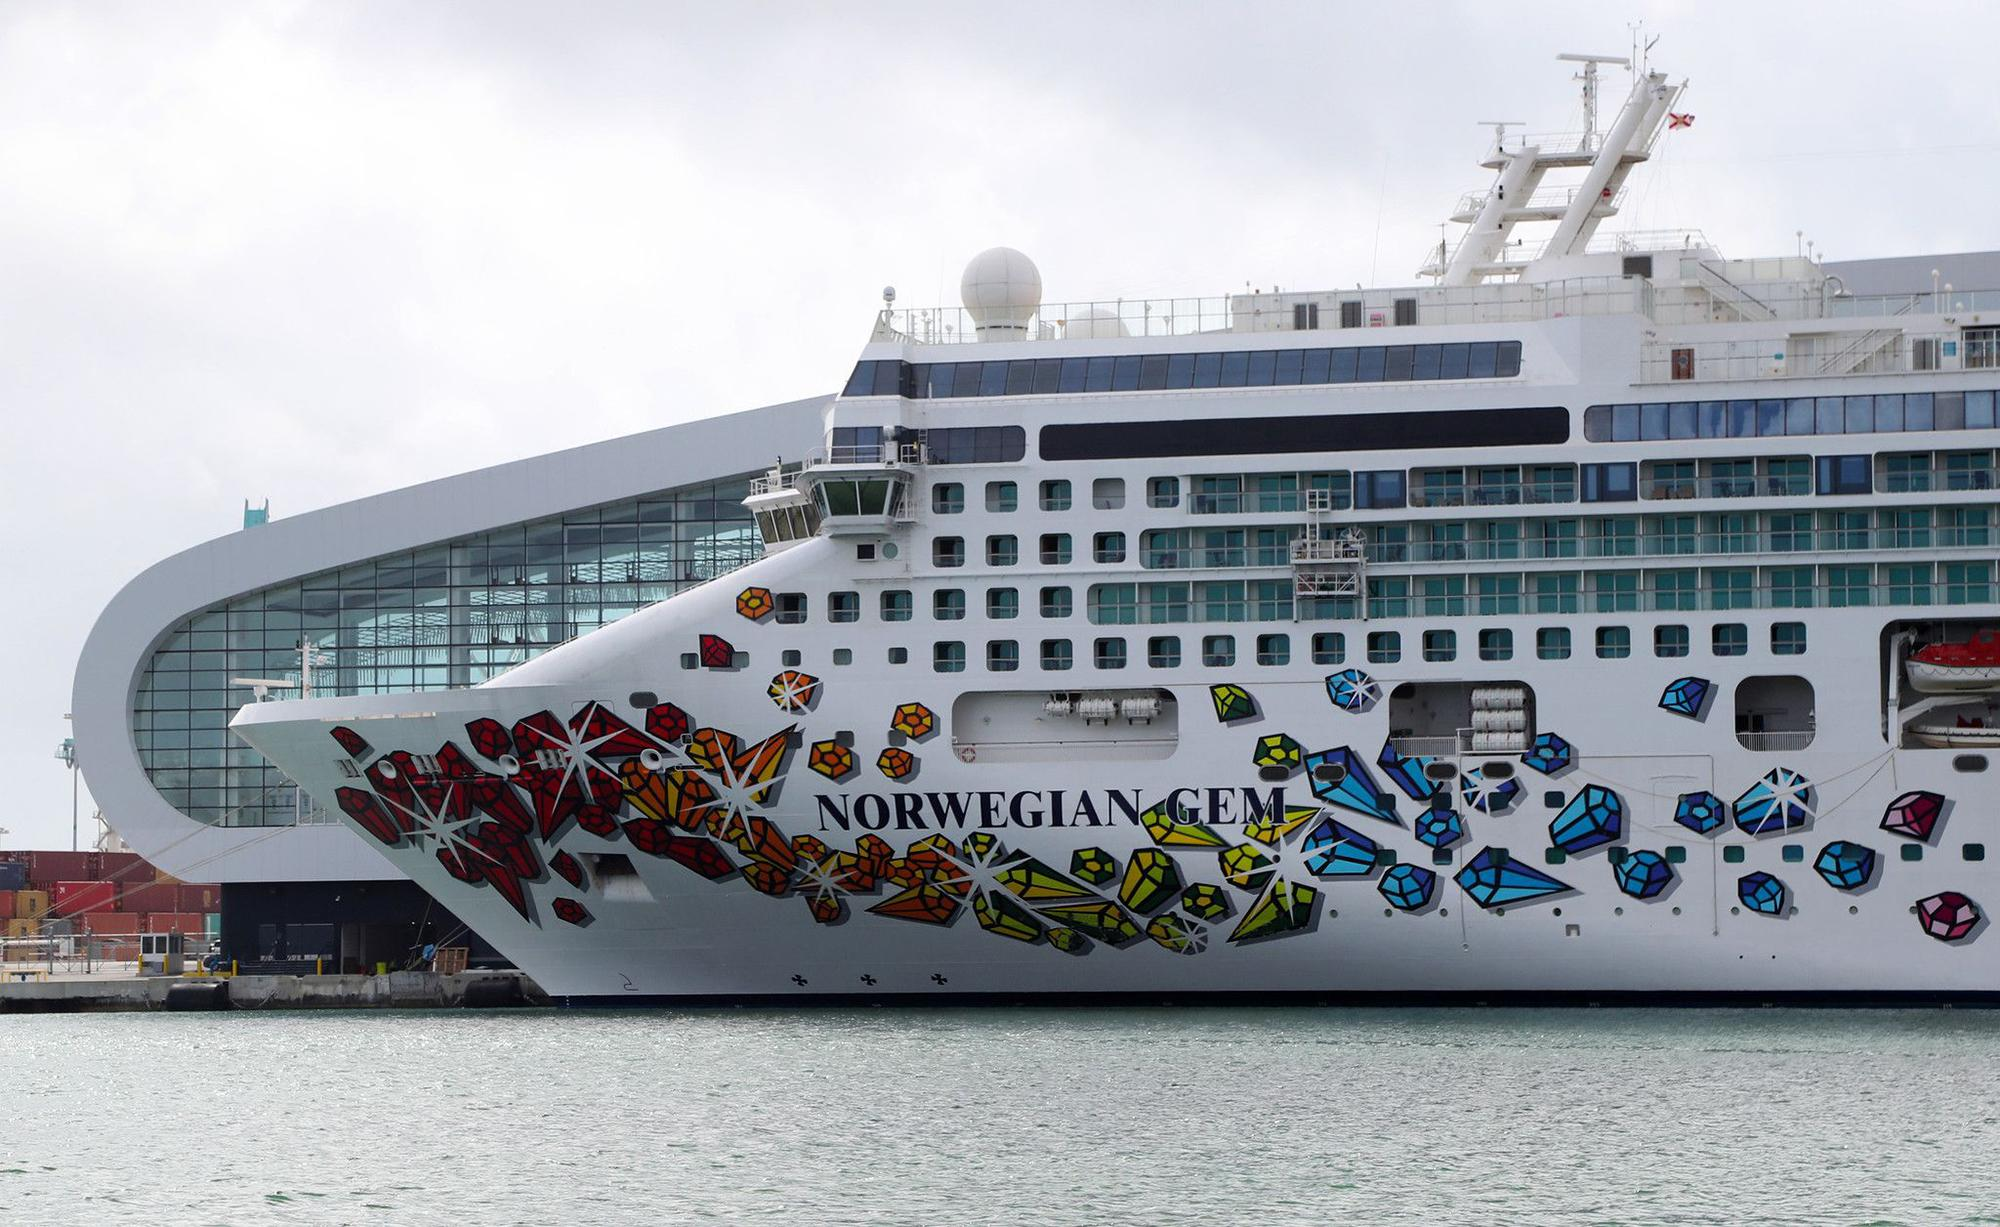 Editorial: To help cruise lines, repeal law banning vaccination passports